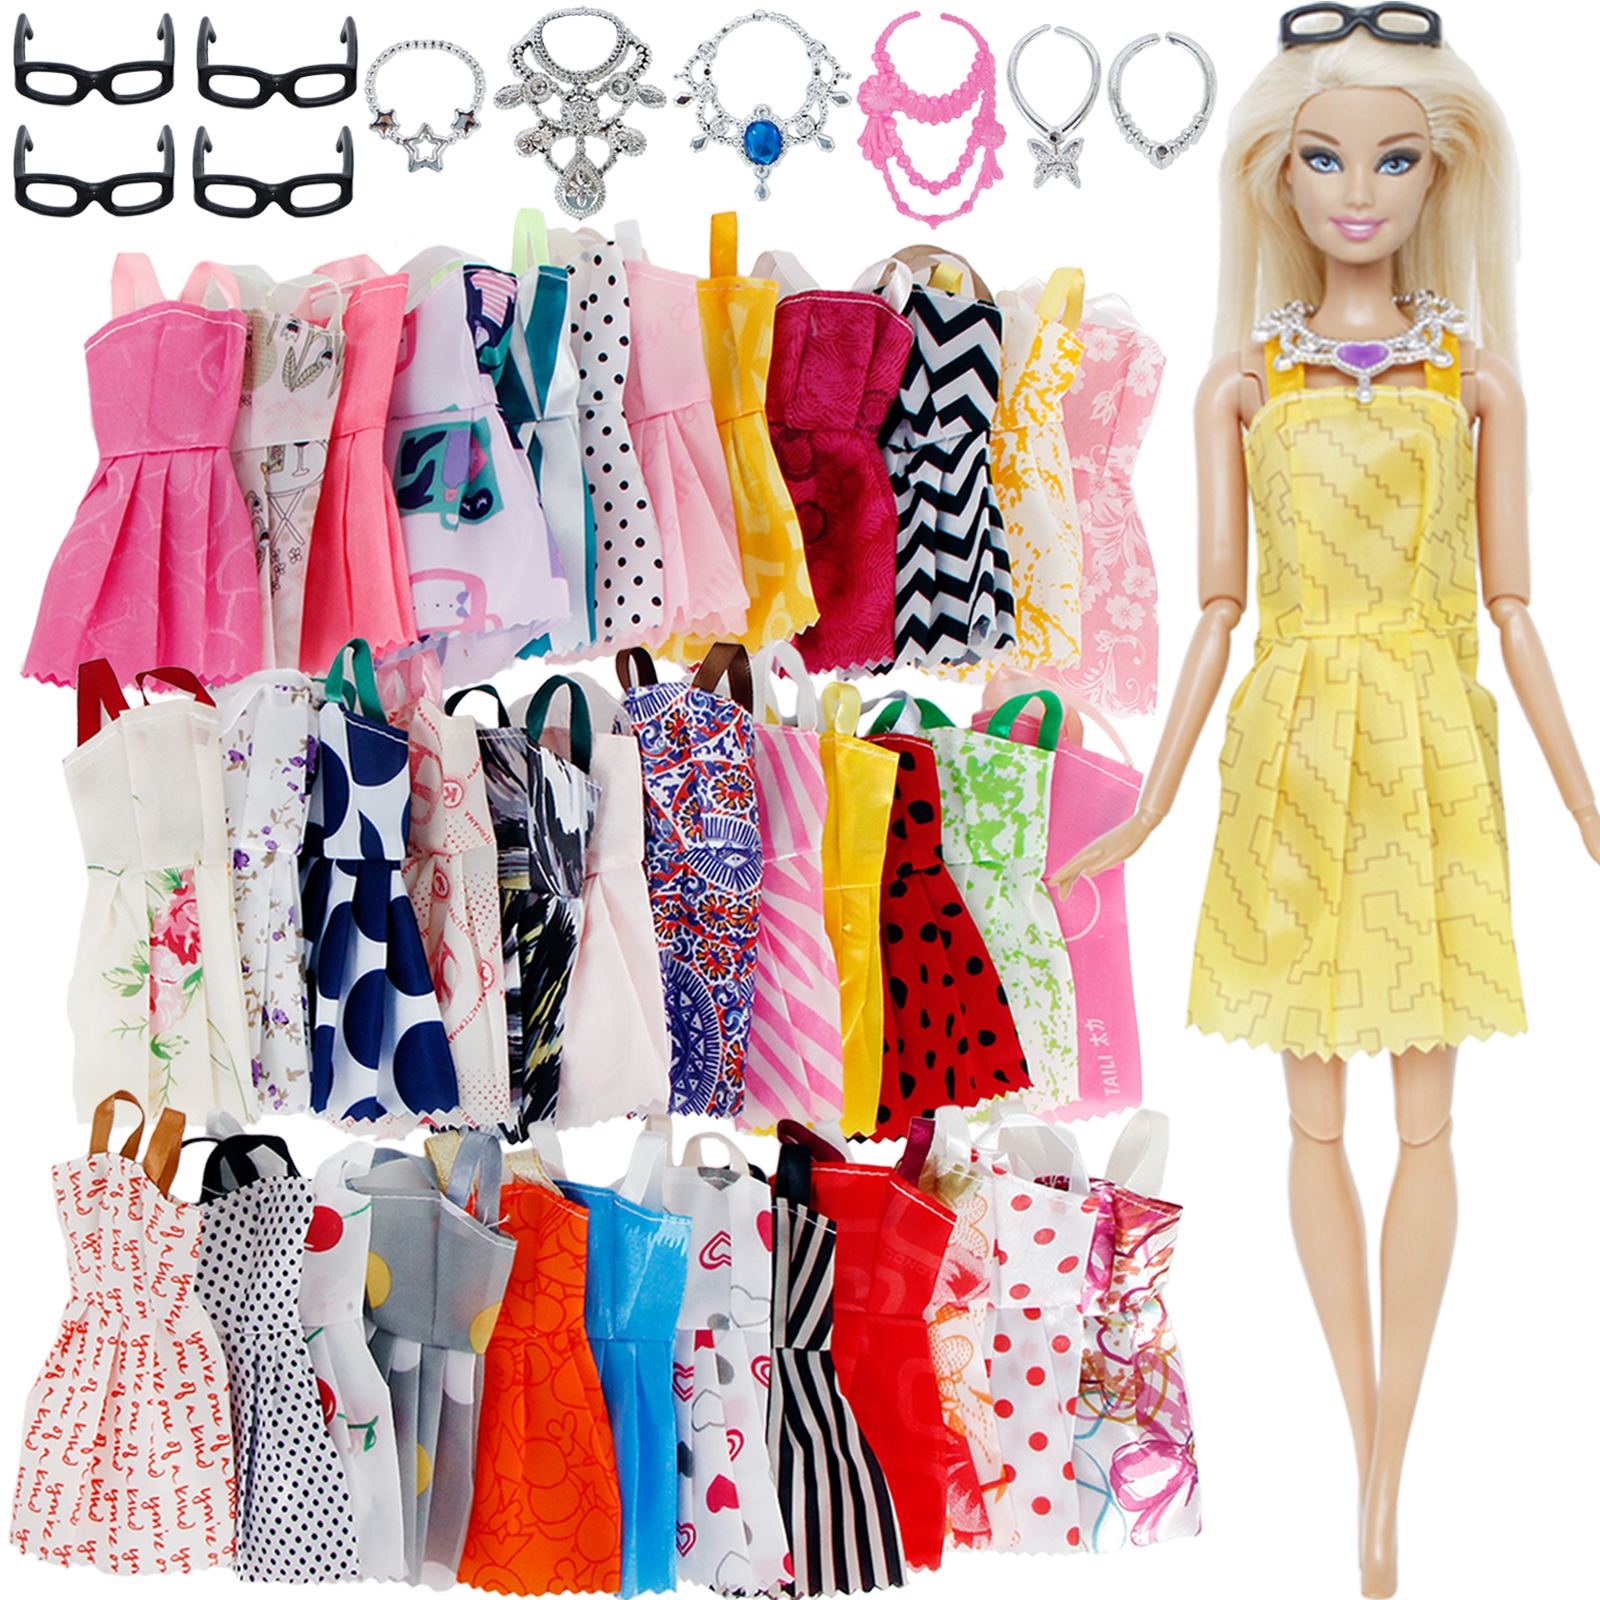 Necklaces Dress Glasses Barbie-Doll-Accessories Mixed-Style Plastic Black Mini Cloth